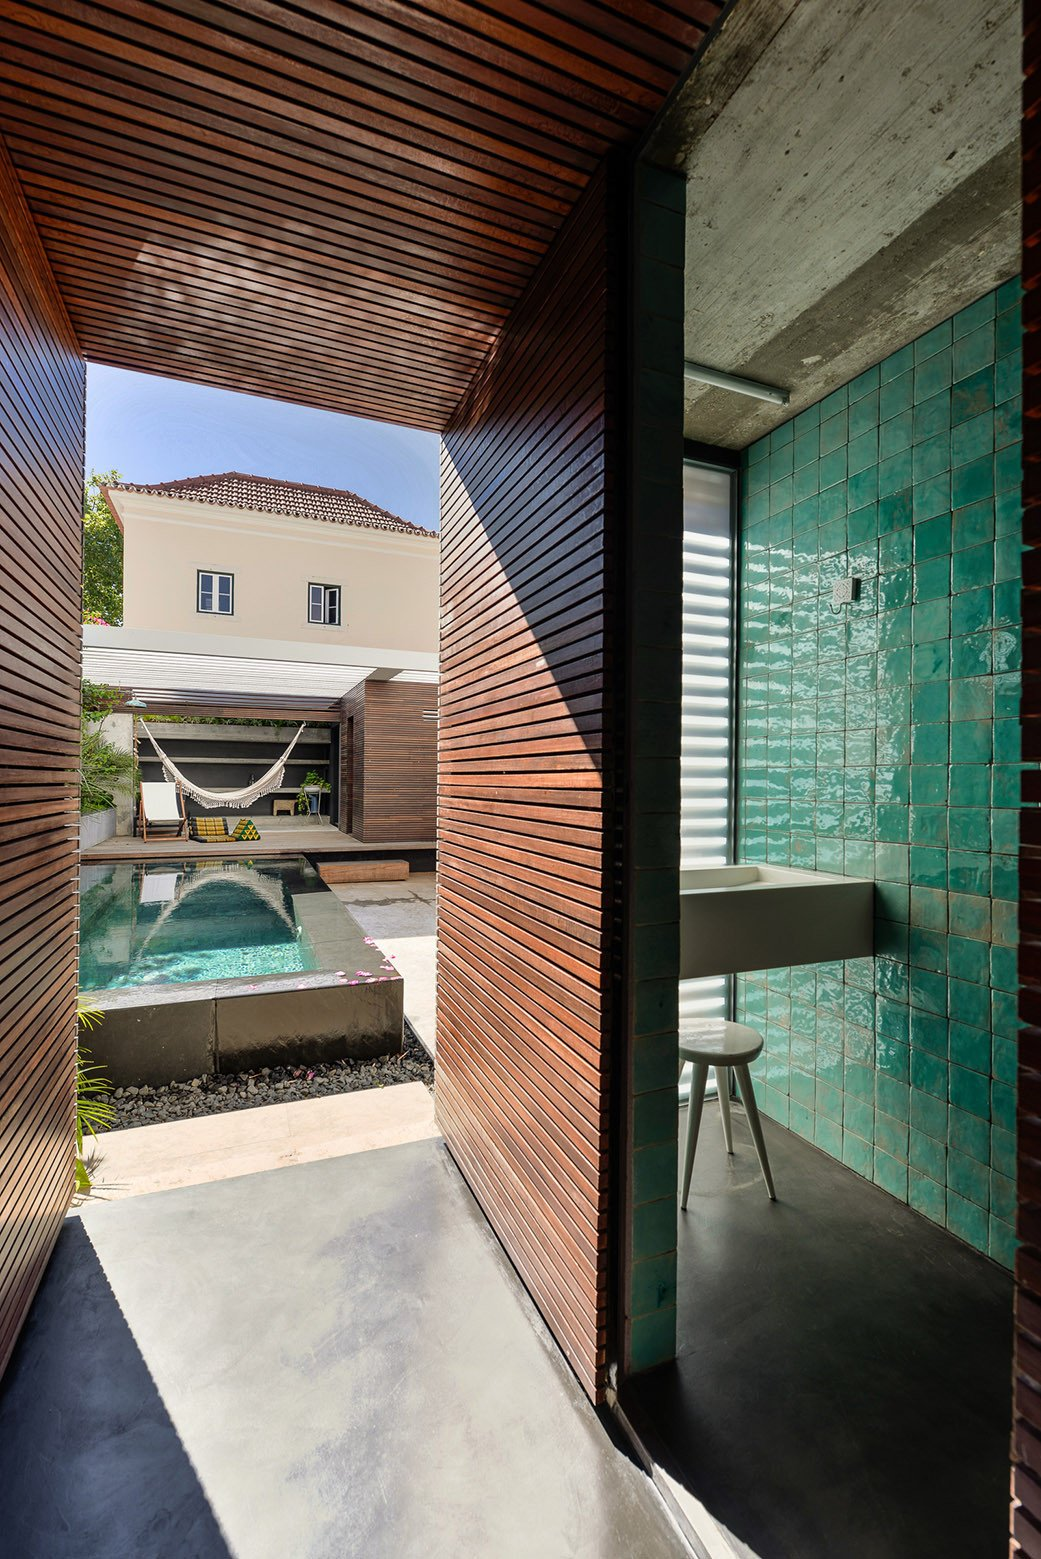 Outdoor, Decking Patio, Porch, Deck, Small Pools, Tubs, Shower, and Back Yard  Photo 9 of 16 in An Architect Renovates His 1920s Home in Portugal, While Preserving the Exterior Shell